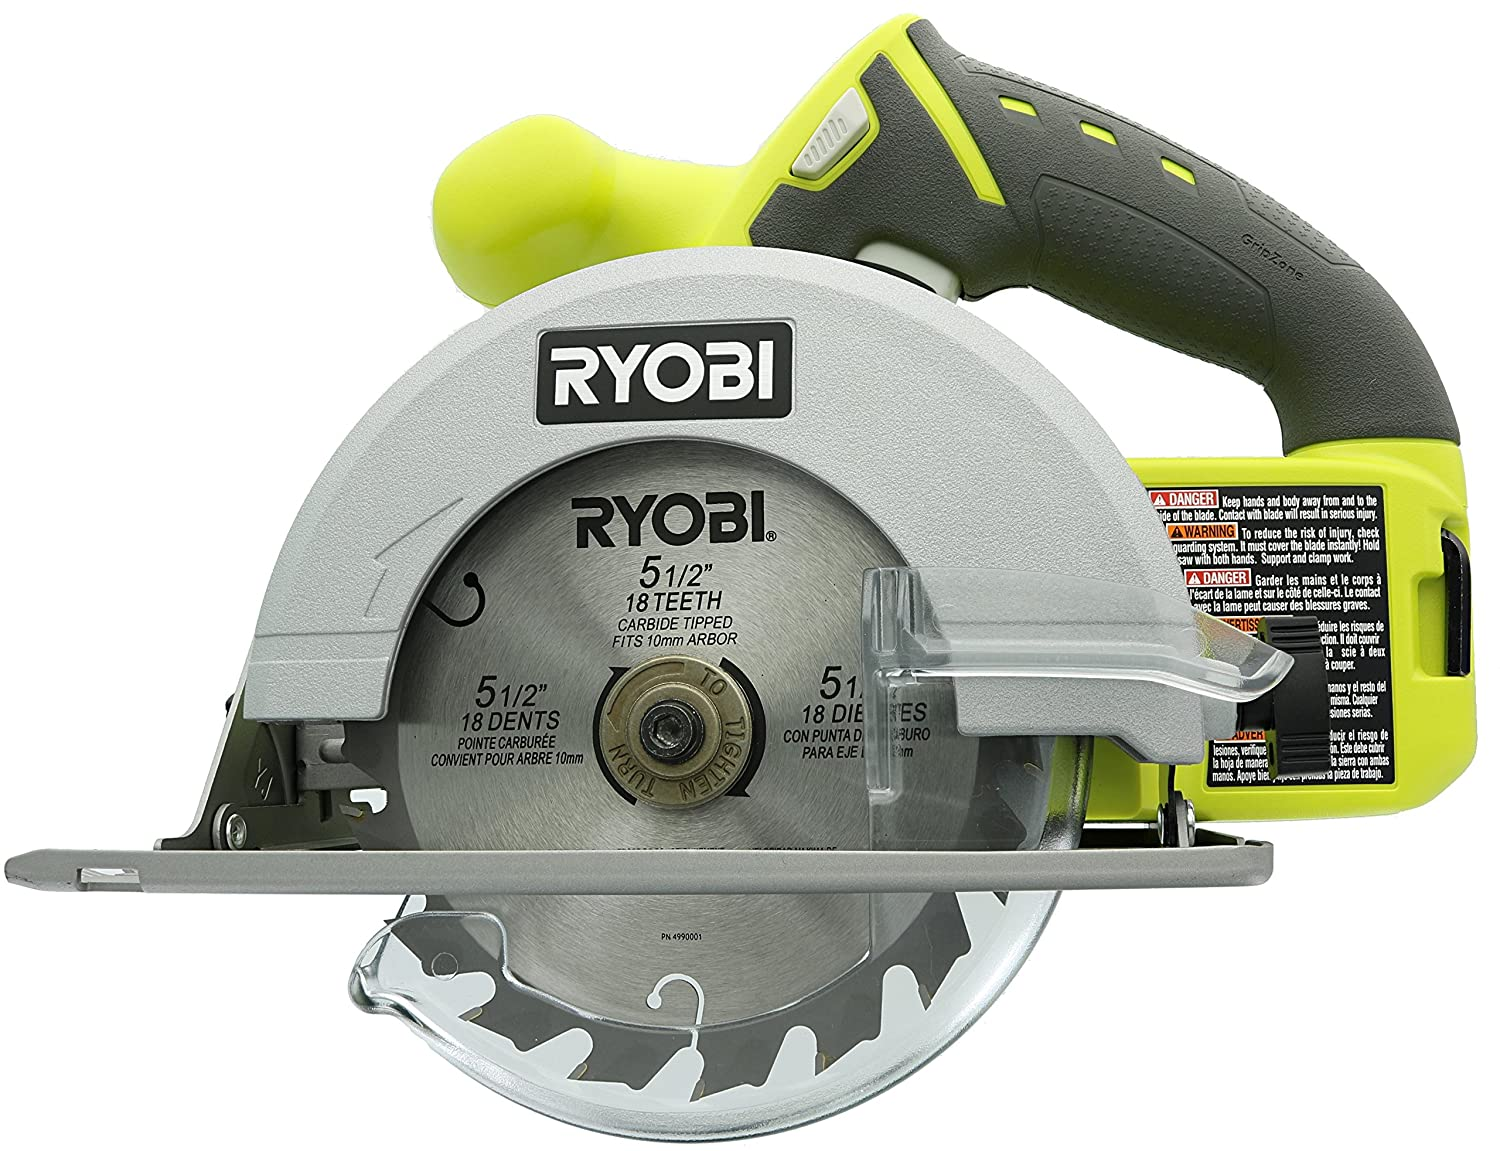 Ryobi p504g one 18 v lithium ion cordless 5 12 inch circular saw ryobi p504g one 18 v lithium ion cordless 5 12 inch circular saw w carbide tip blade battery not included power tool only power circular saws greentooth